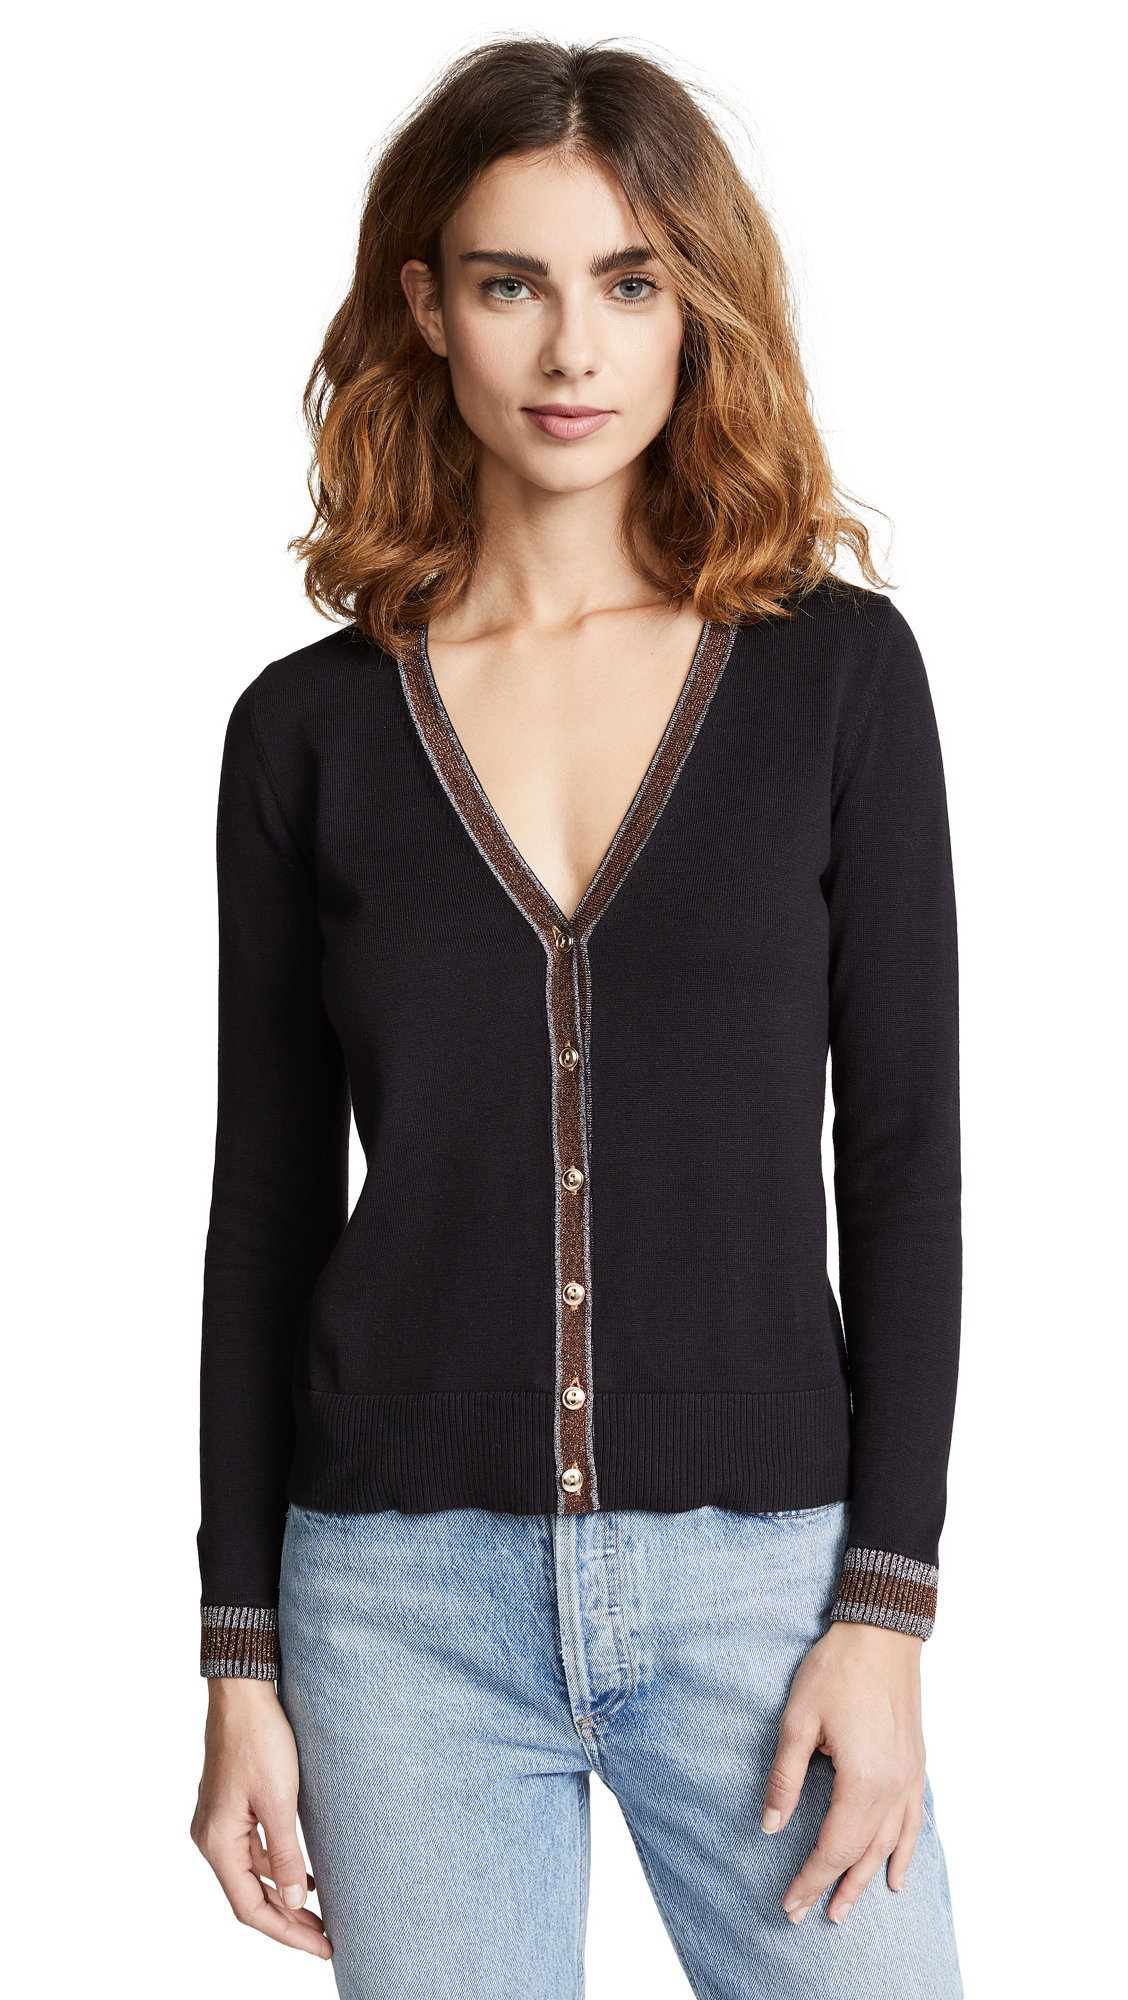 BOP BASICS Metallic Trim Cardigan in Black/Silver/Bronze